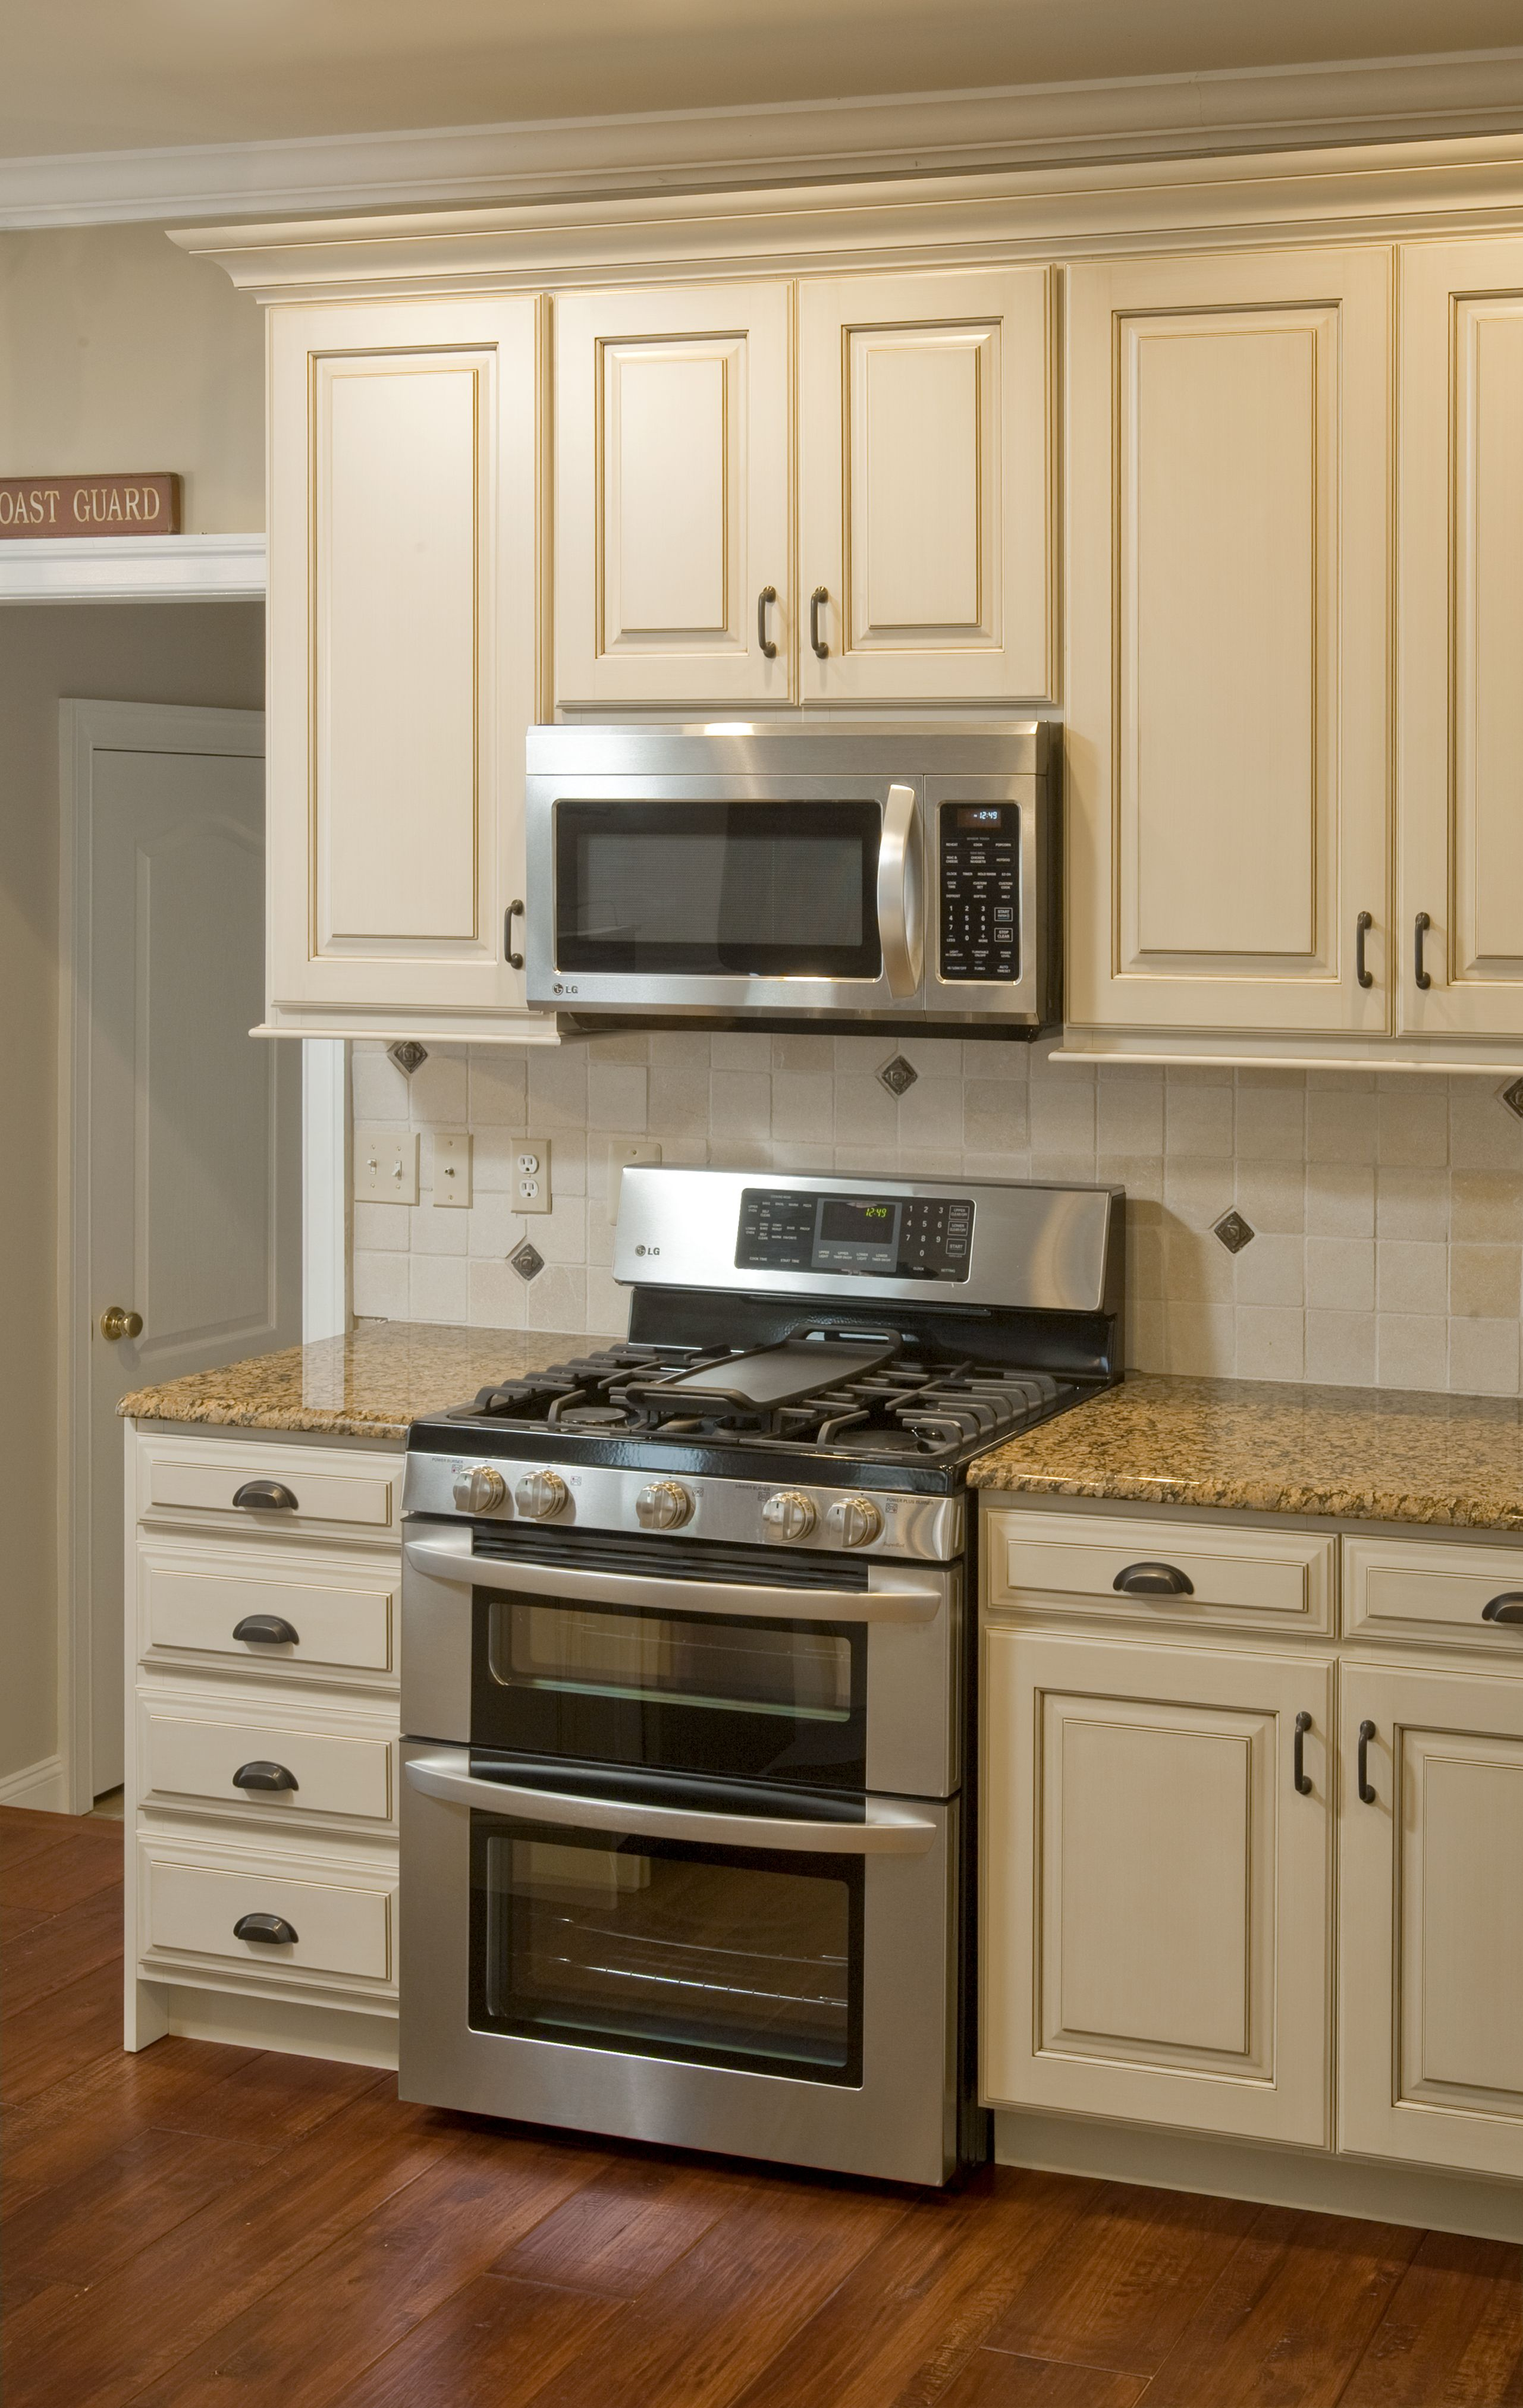 Restored Kitchen Cabinets Not Pure White More Of An Off White